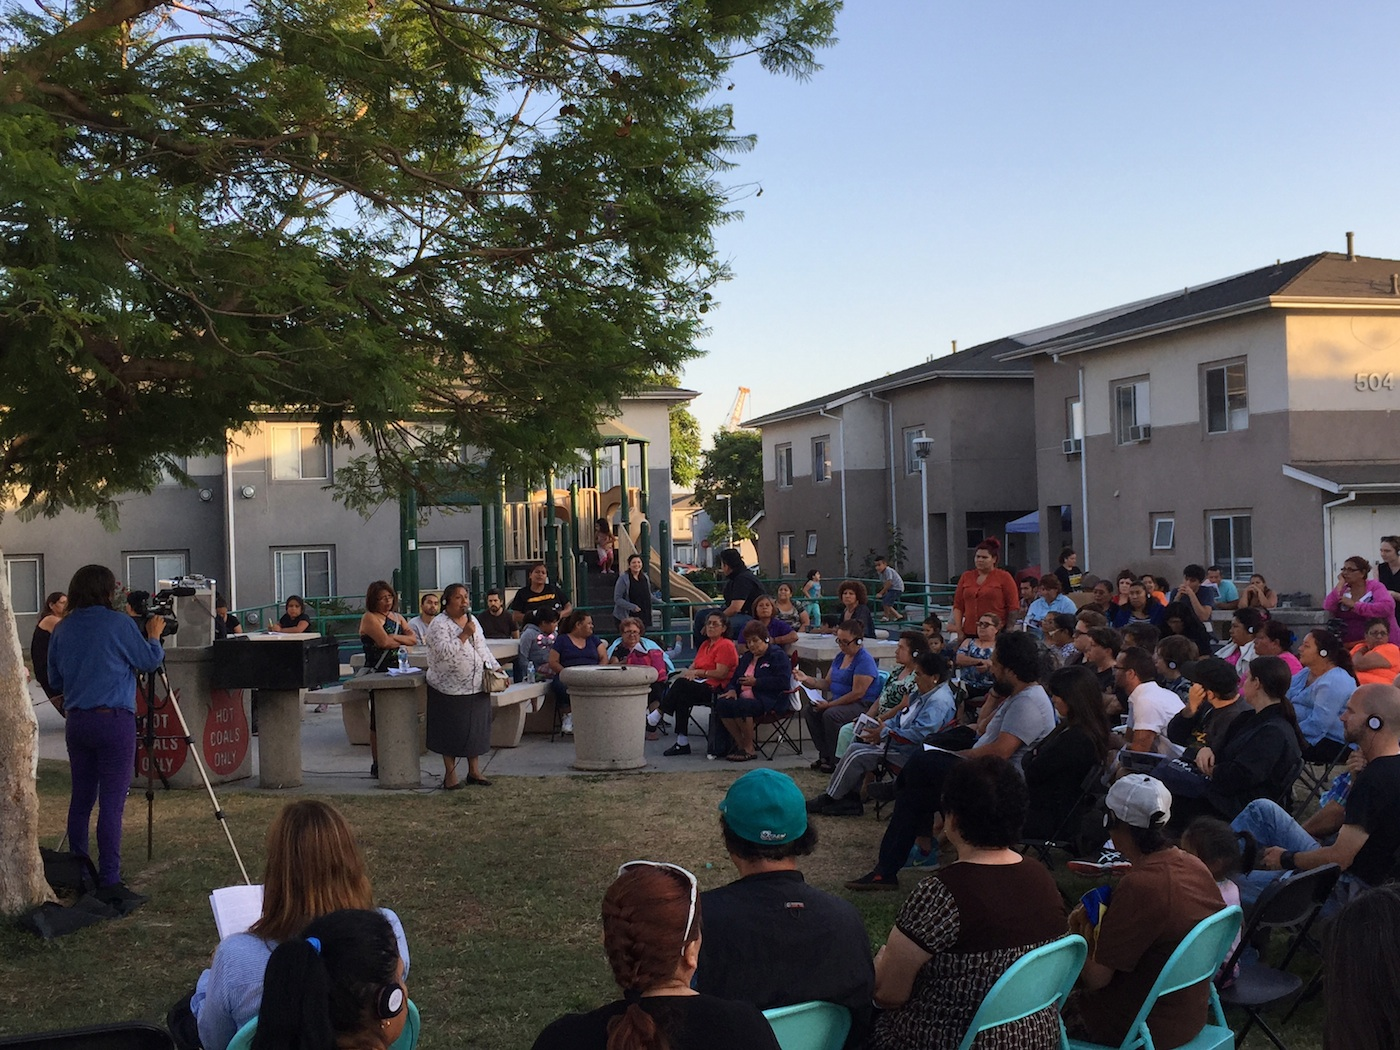 Community Forum held at Pico Gardens on July 12 (all photos by the author for Hyperallergic)